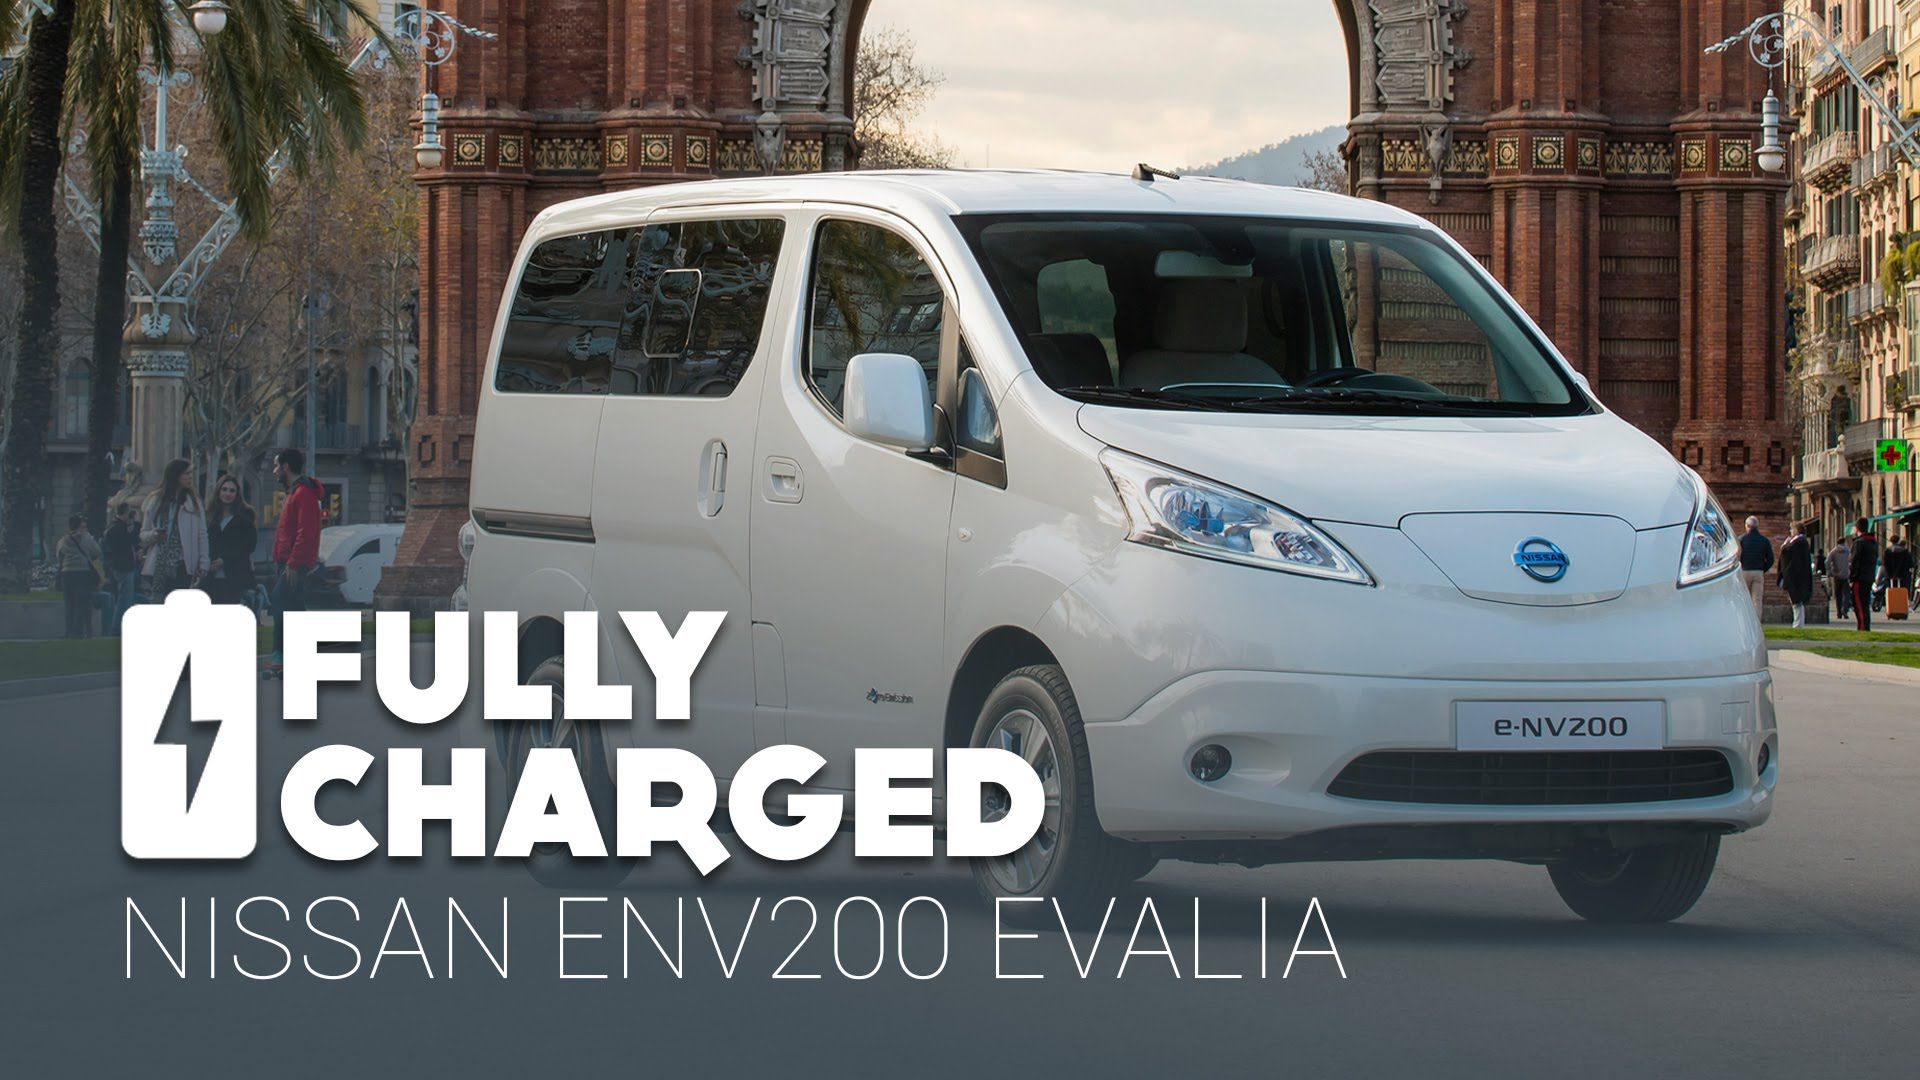 Nissan Env200 Evalia Fully Charged Nissan Electric Cars Car Videos